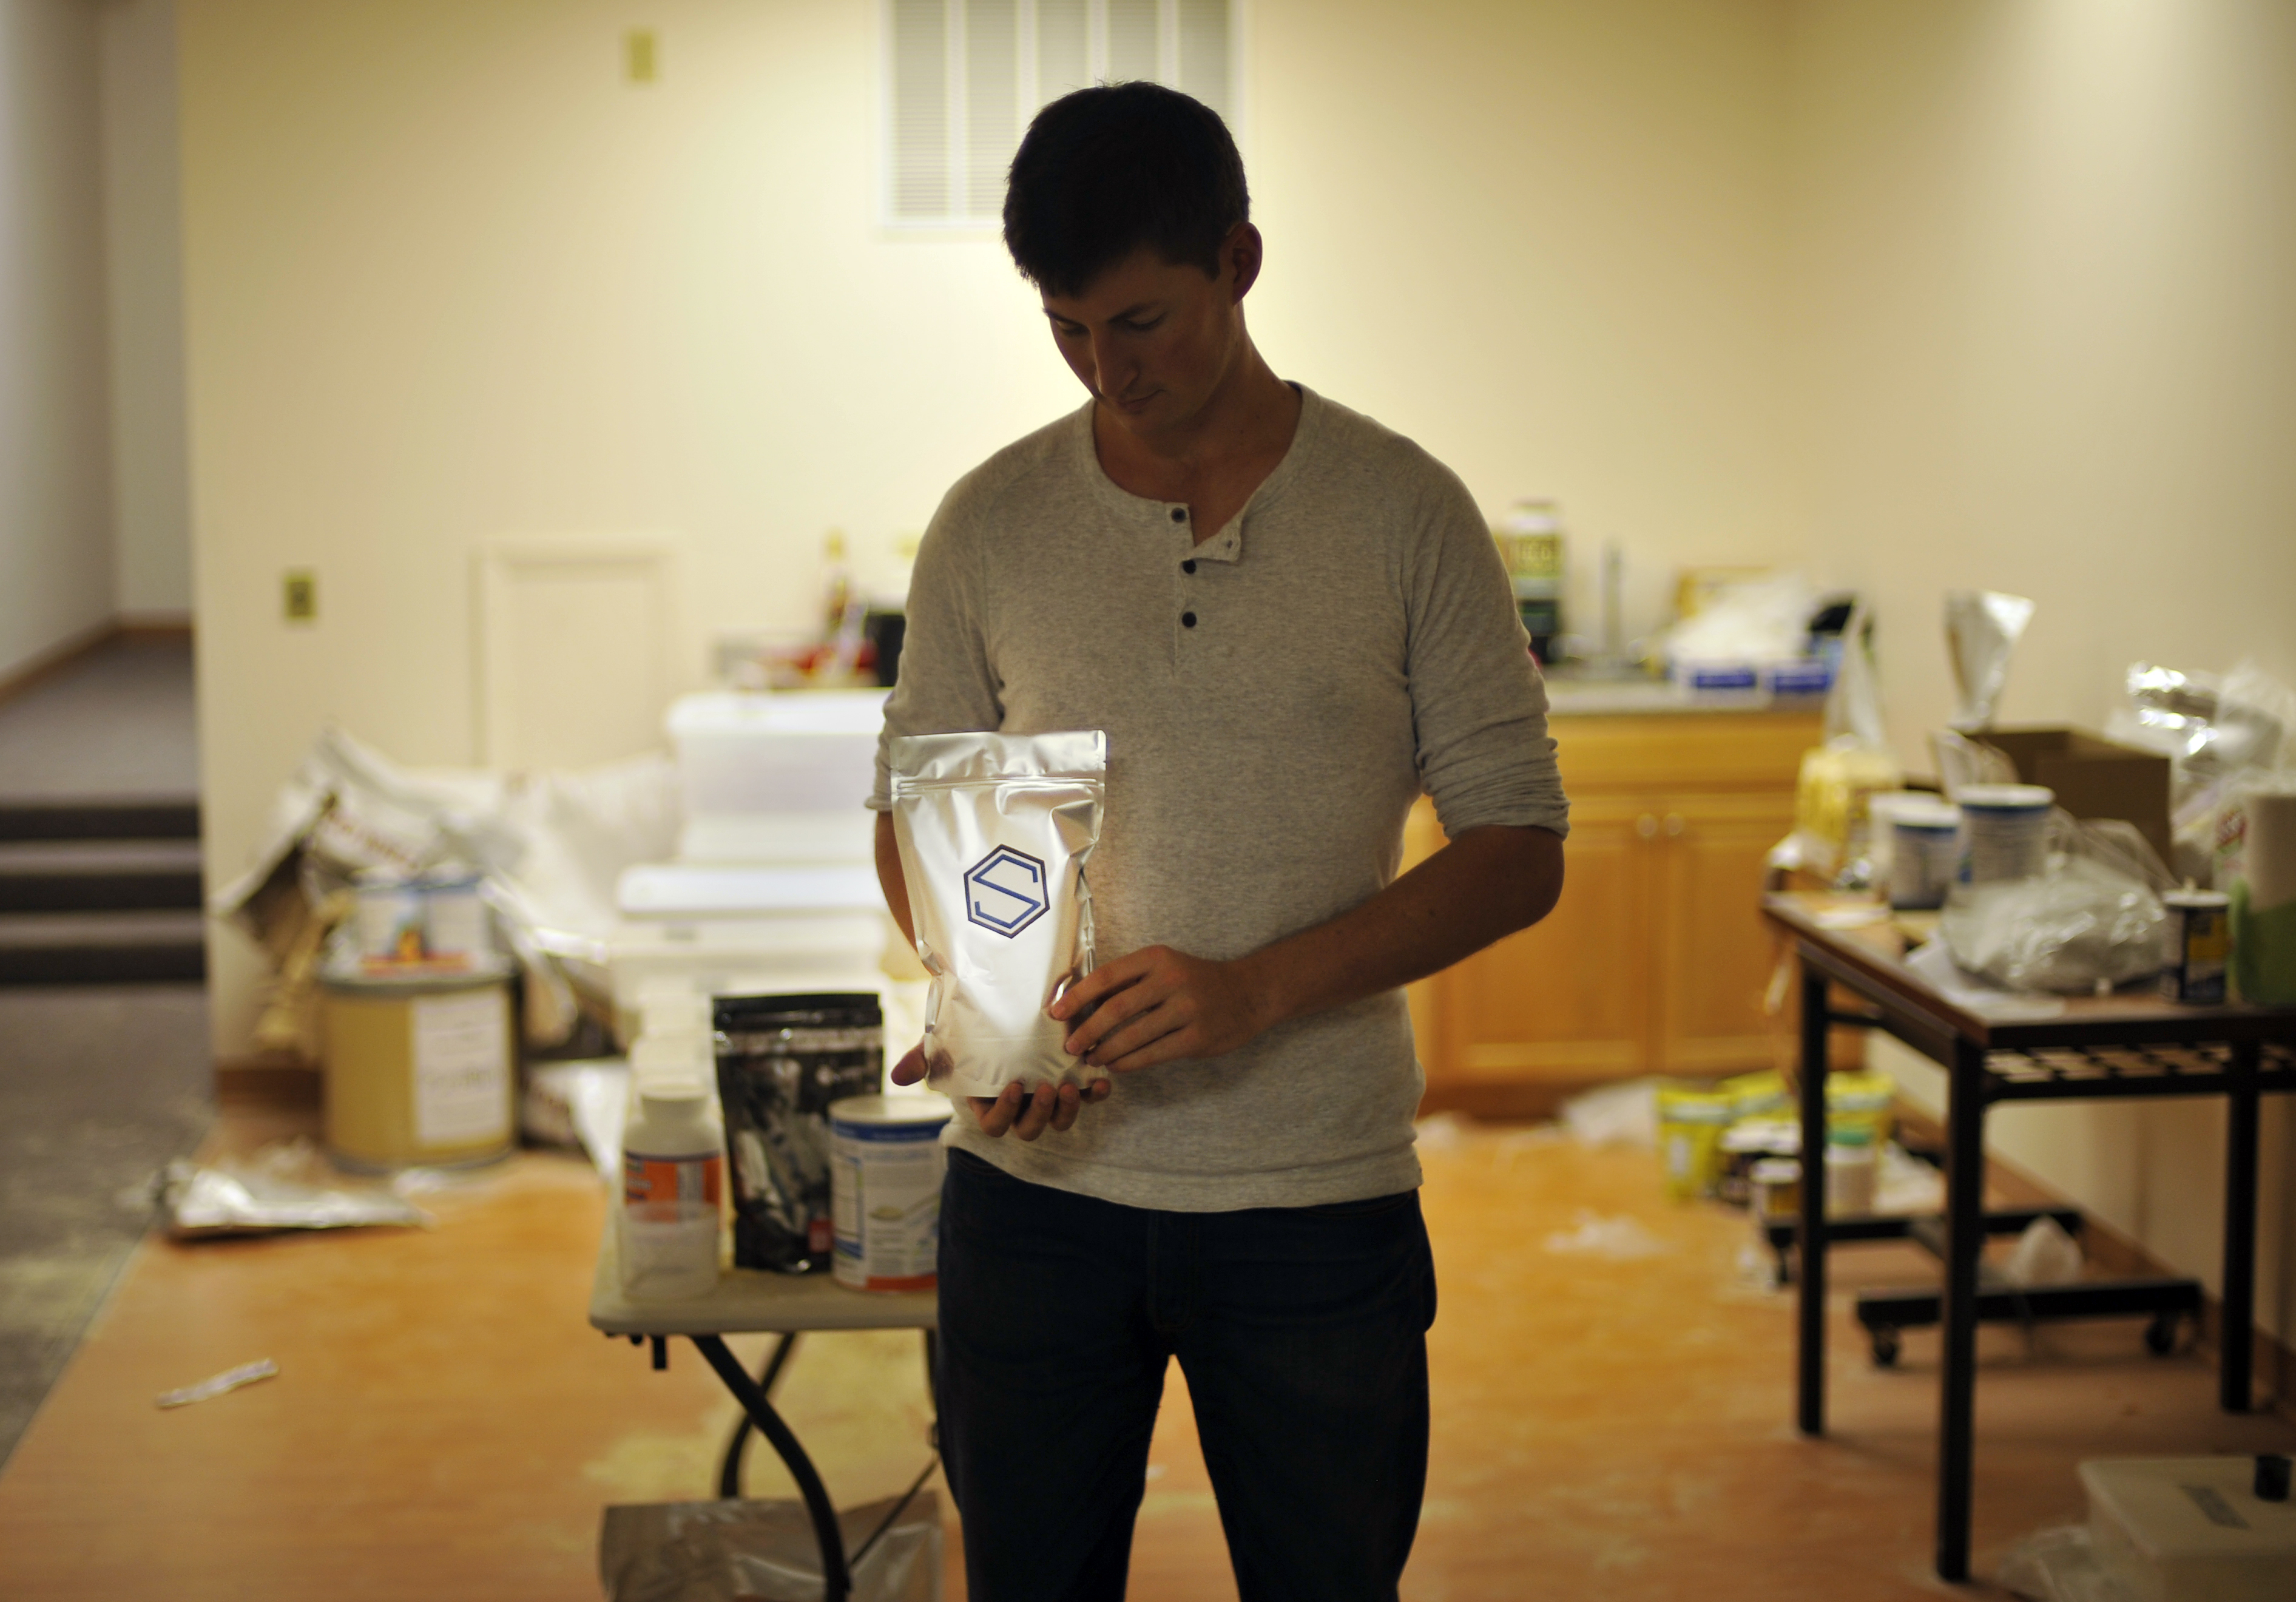 Soylent CEO Rob Rhinehart at his warehouse in Oakland, California, in 2013.